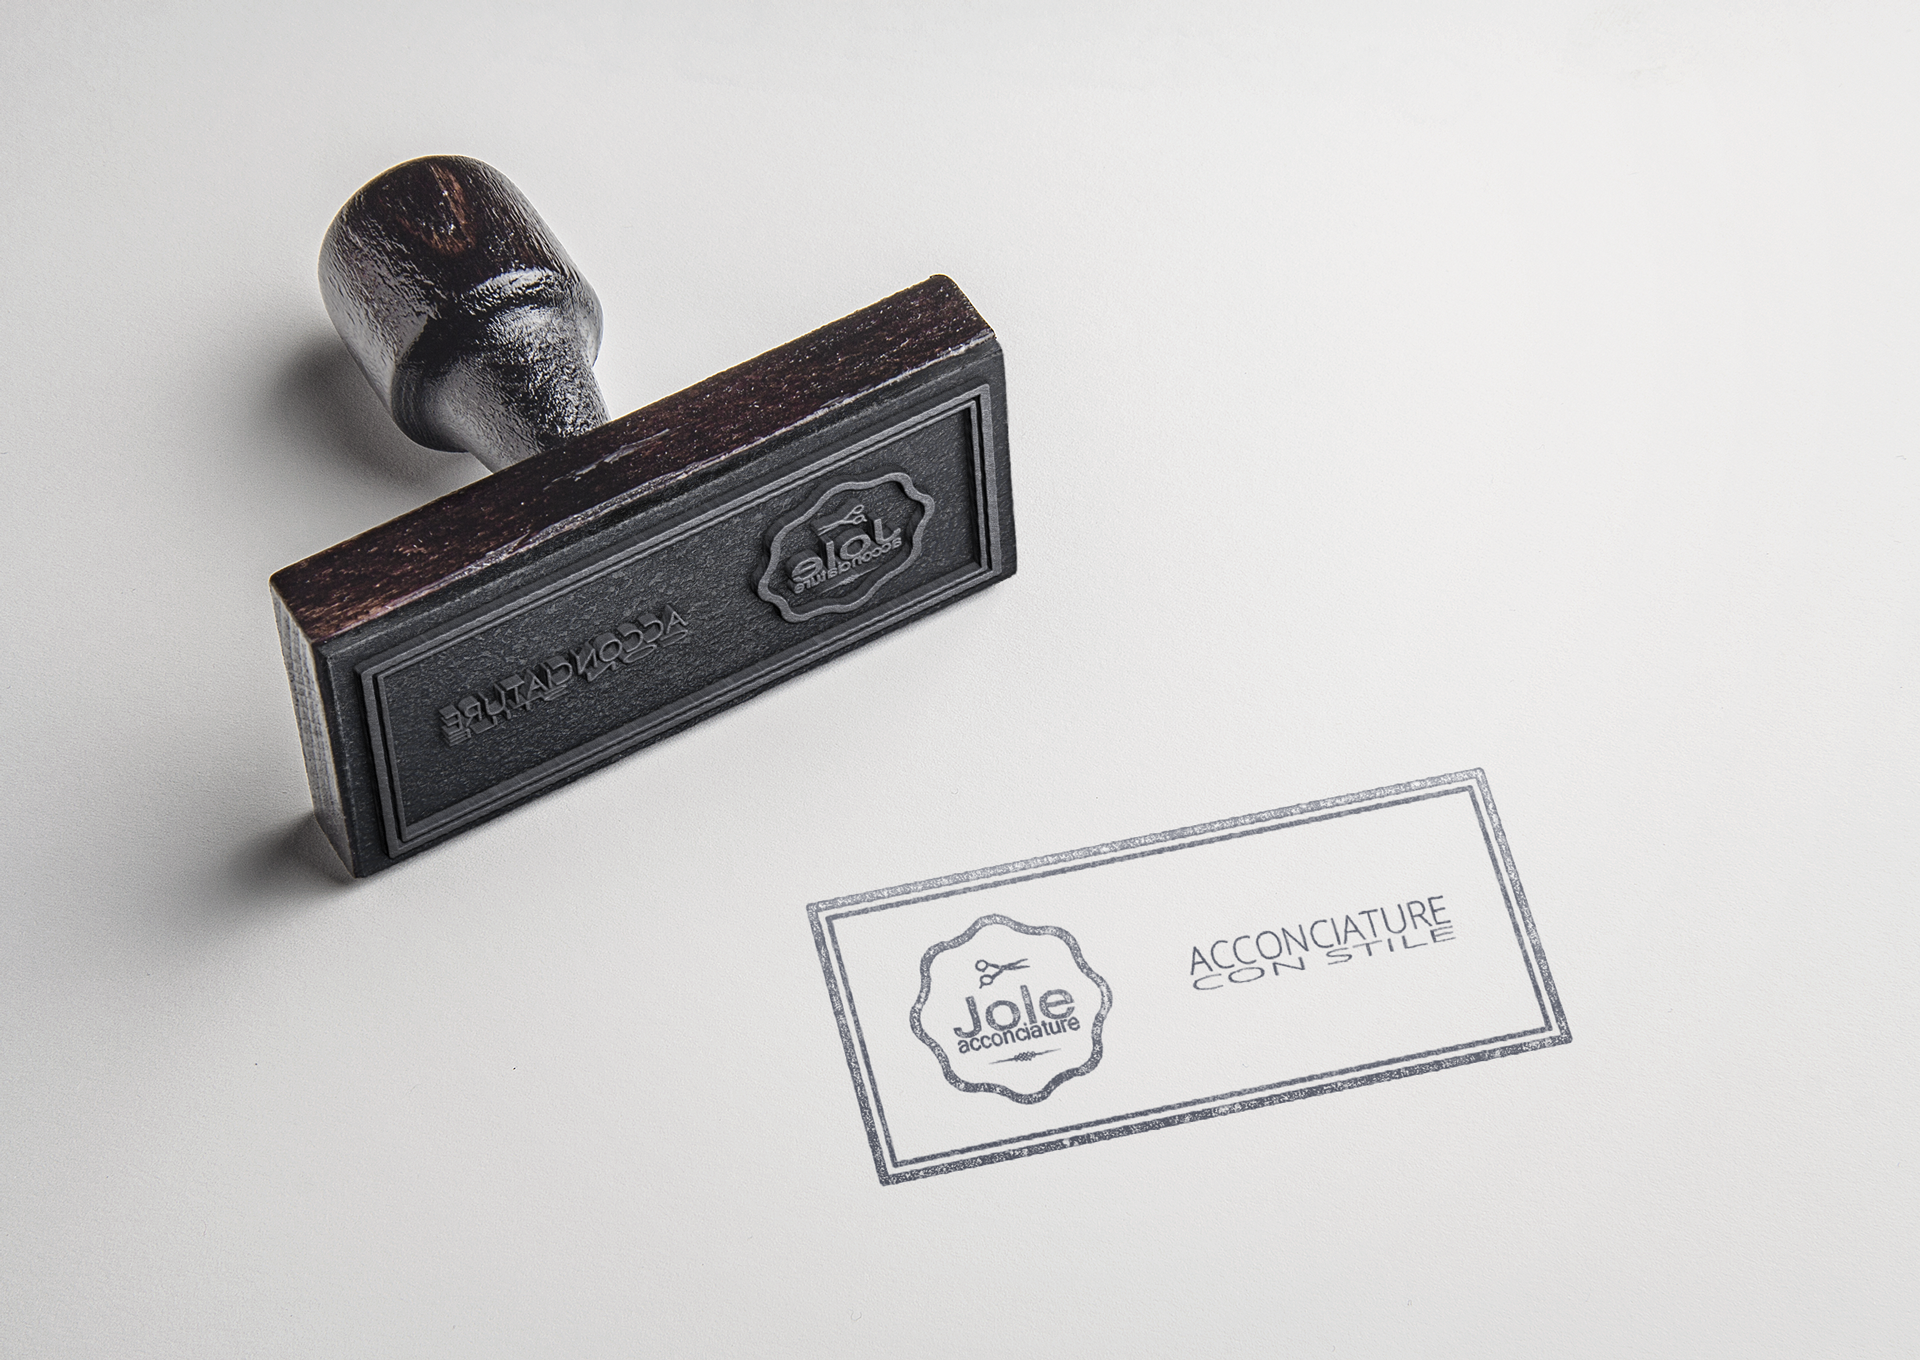 acconciature jole -Rubber-Stamp